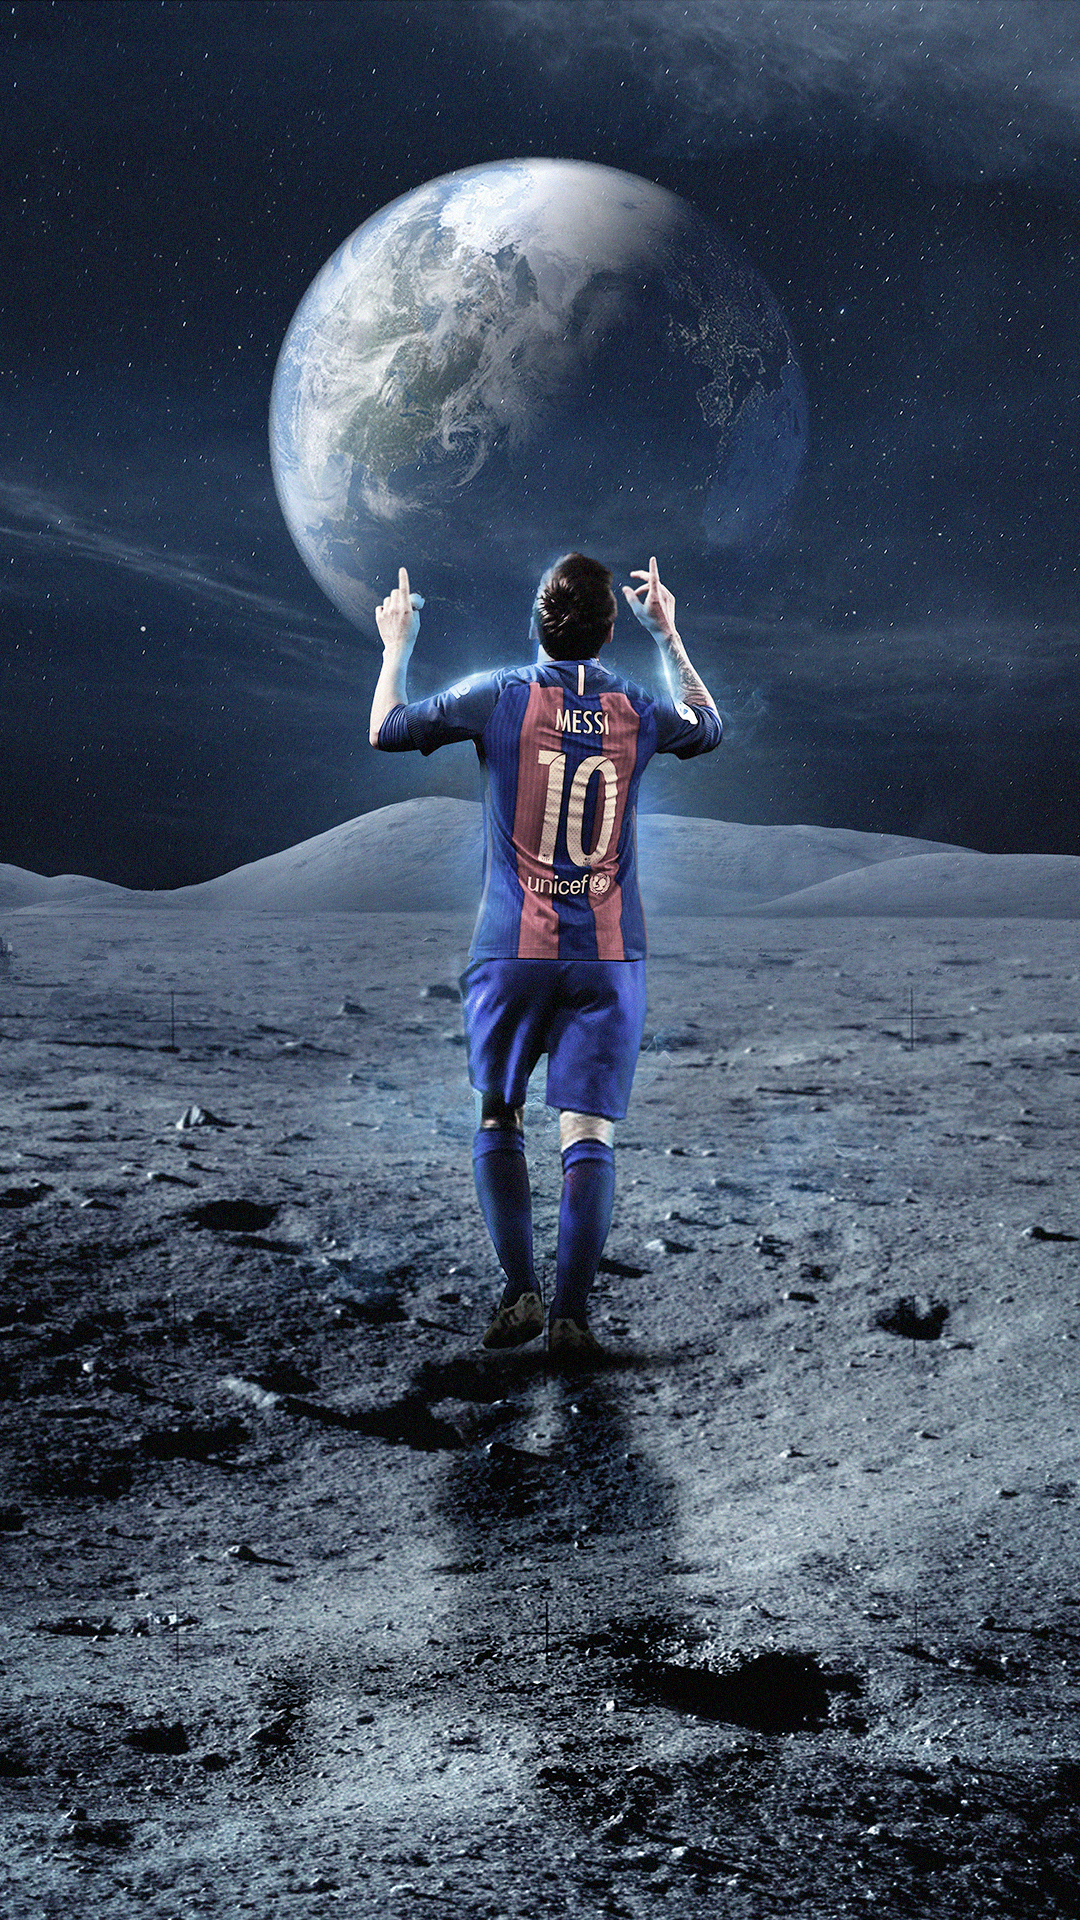 MESSI-MOBILE-PLANET